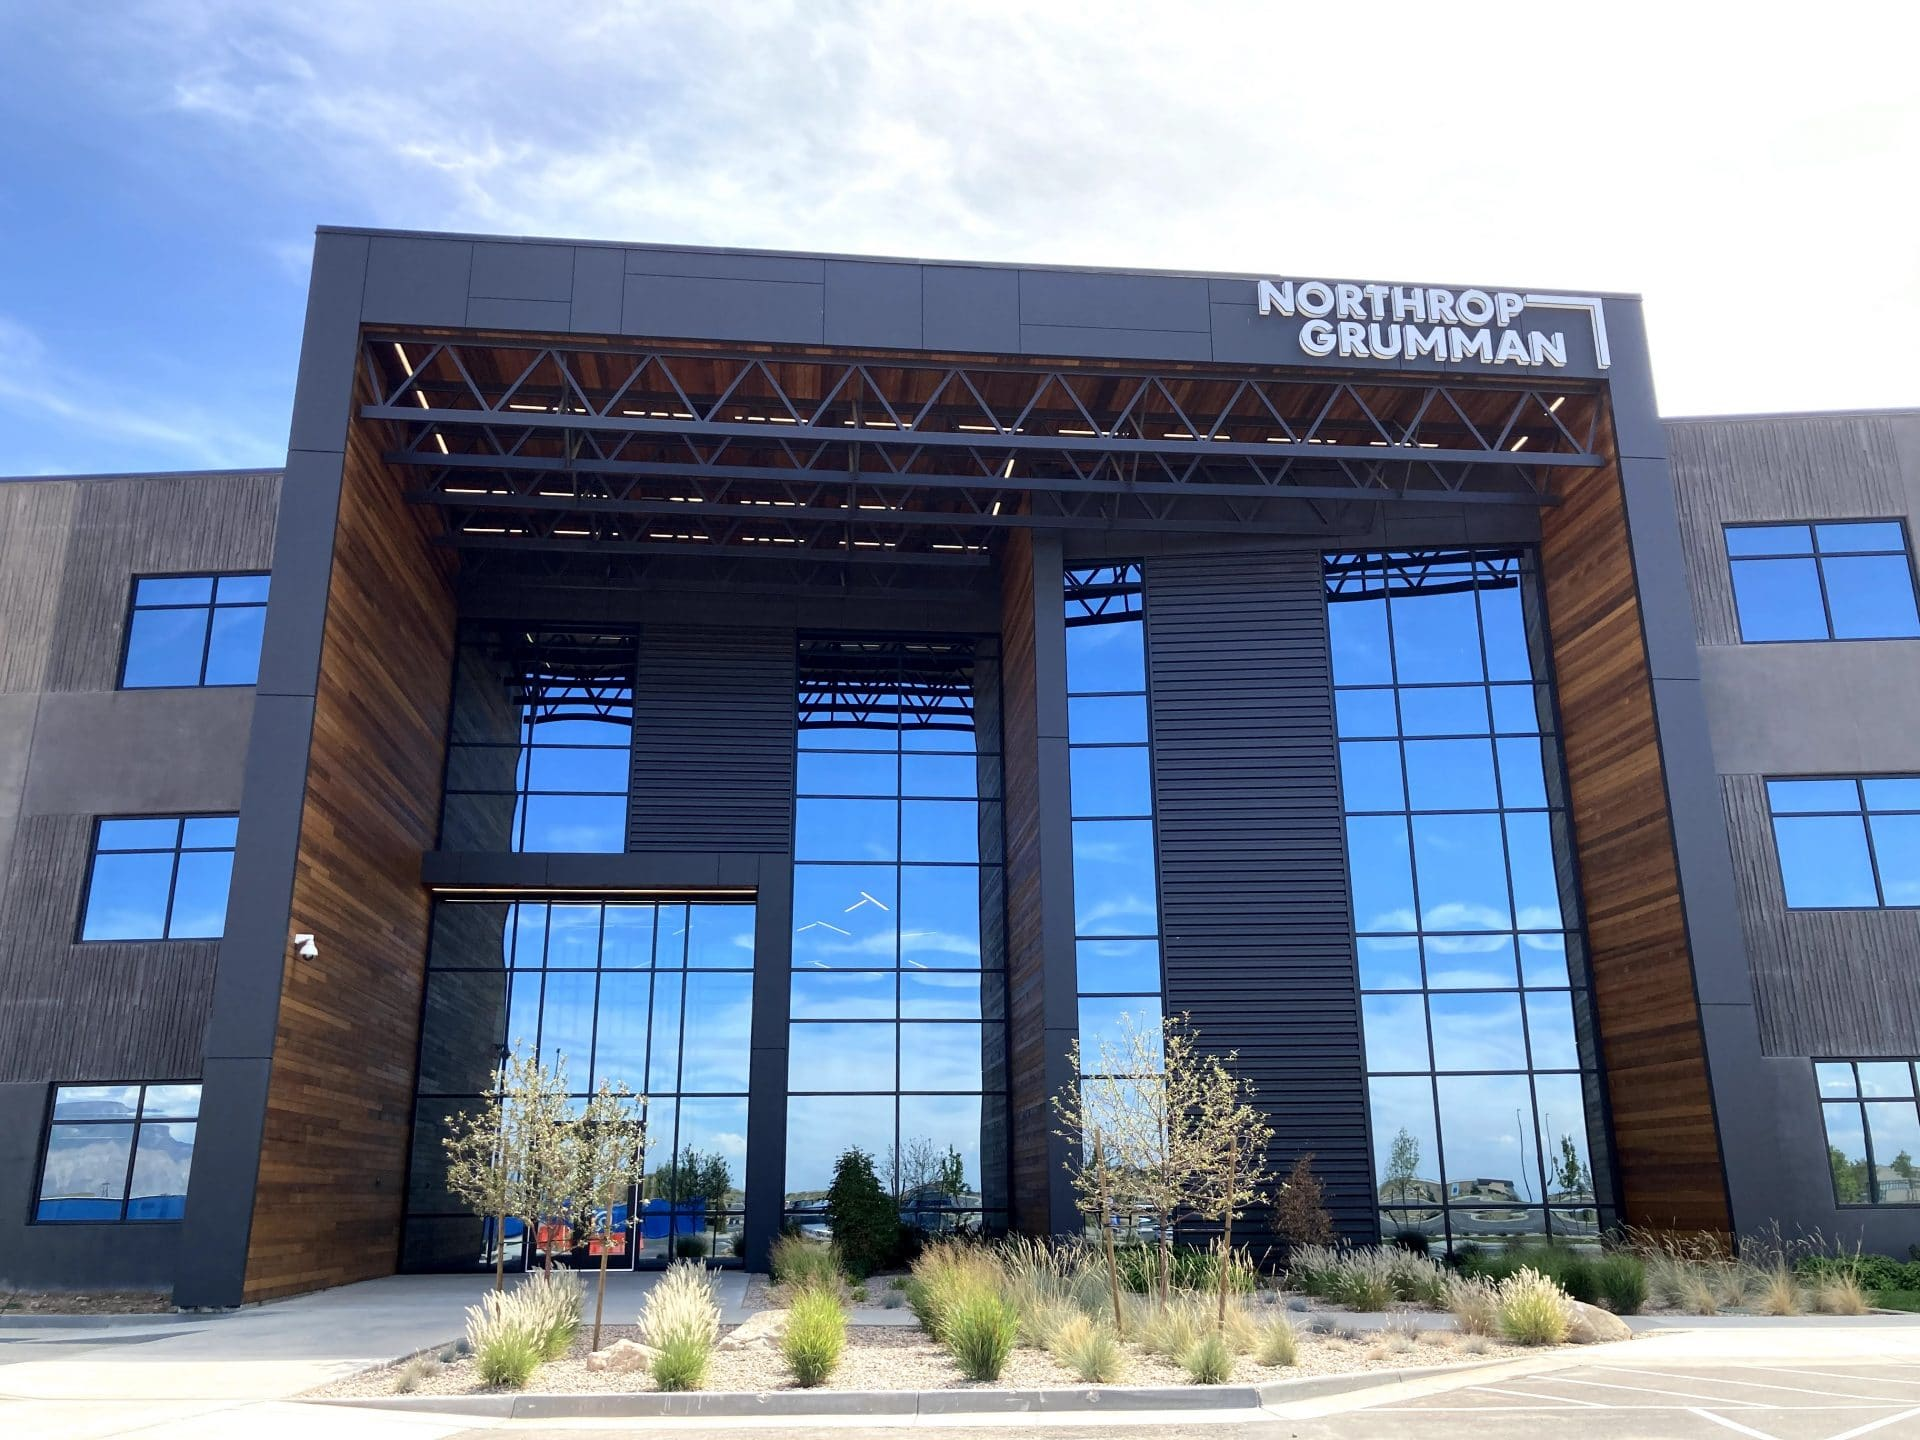 northrop-grumman-roy-innovation-center